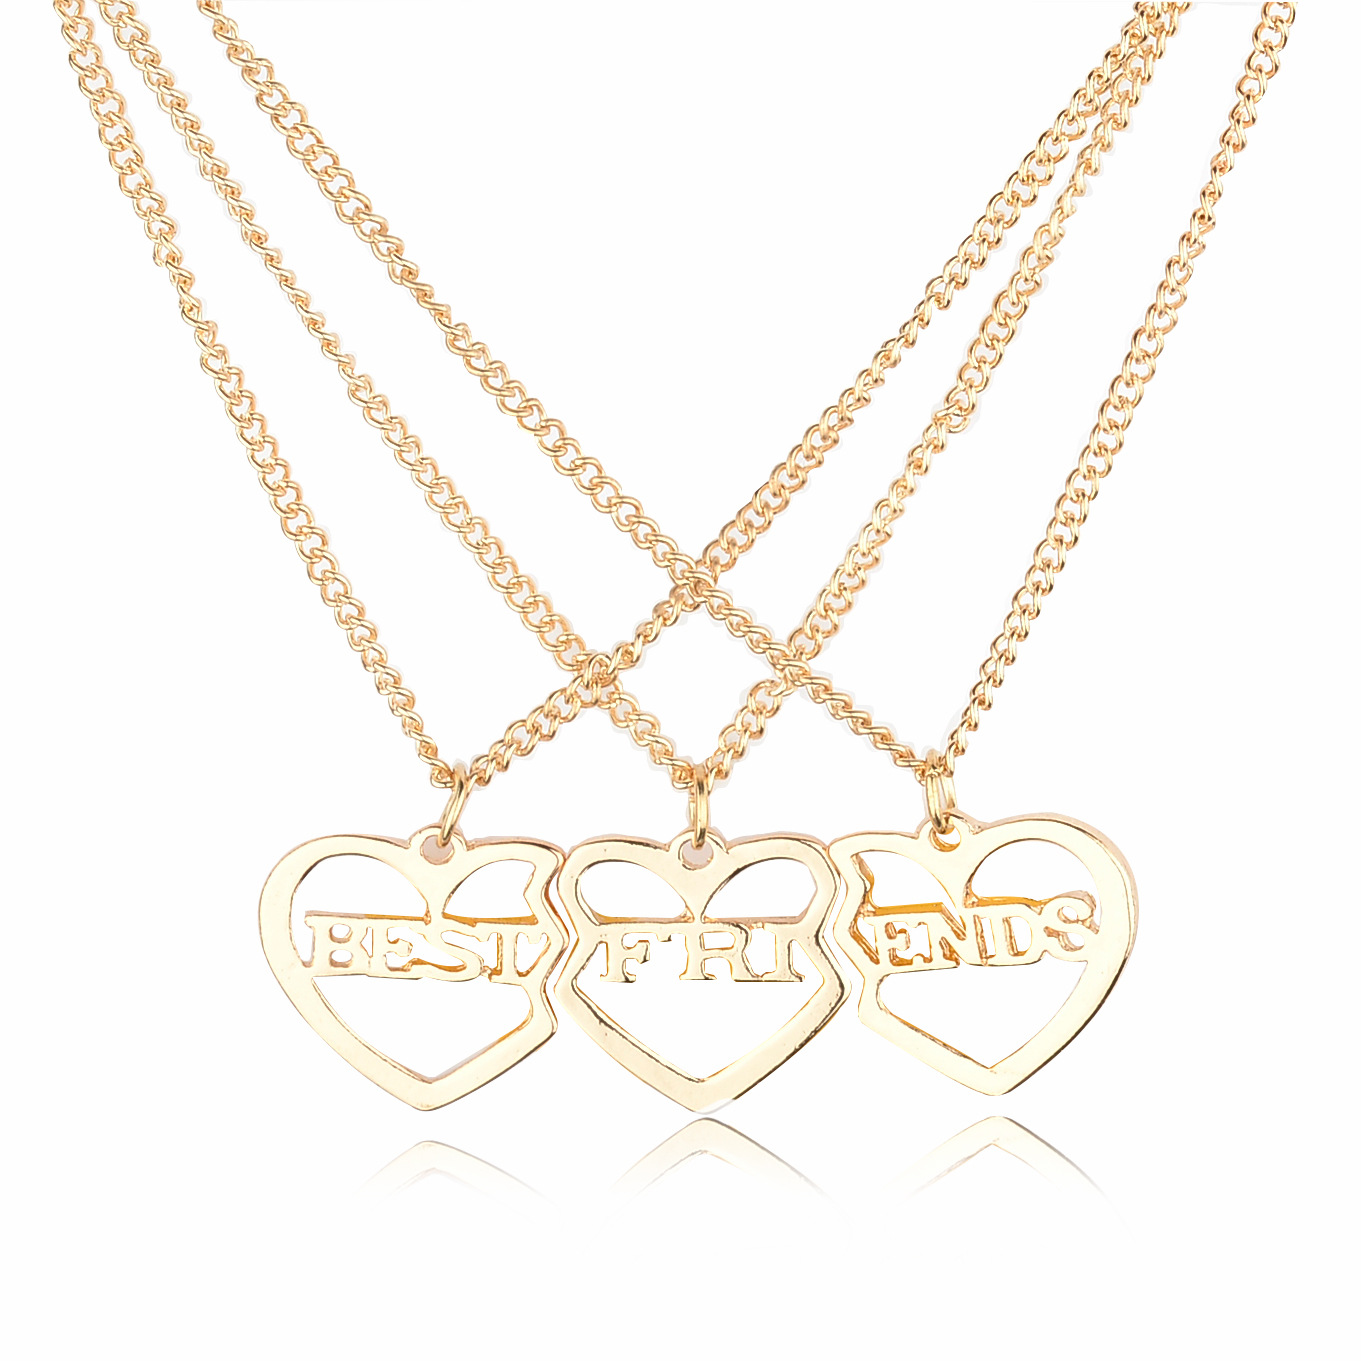 lureme Gold Planted Heart 3 Parts Best Friends Forever BFF Necklace Pendant Necklace For Women Girl Free Shipping (nl004222)